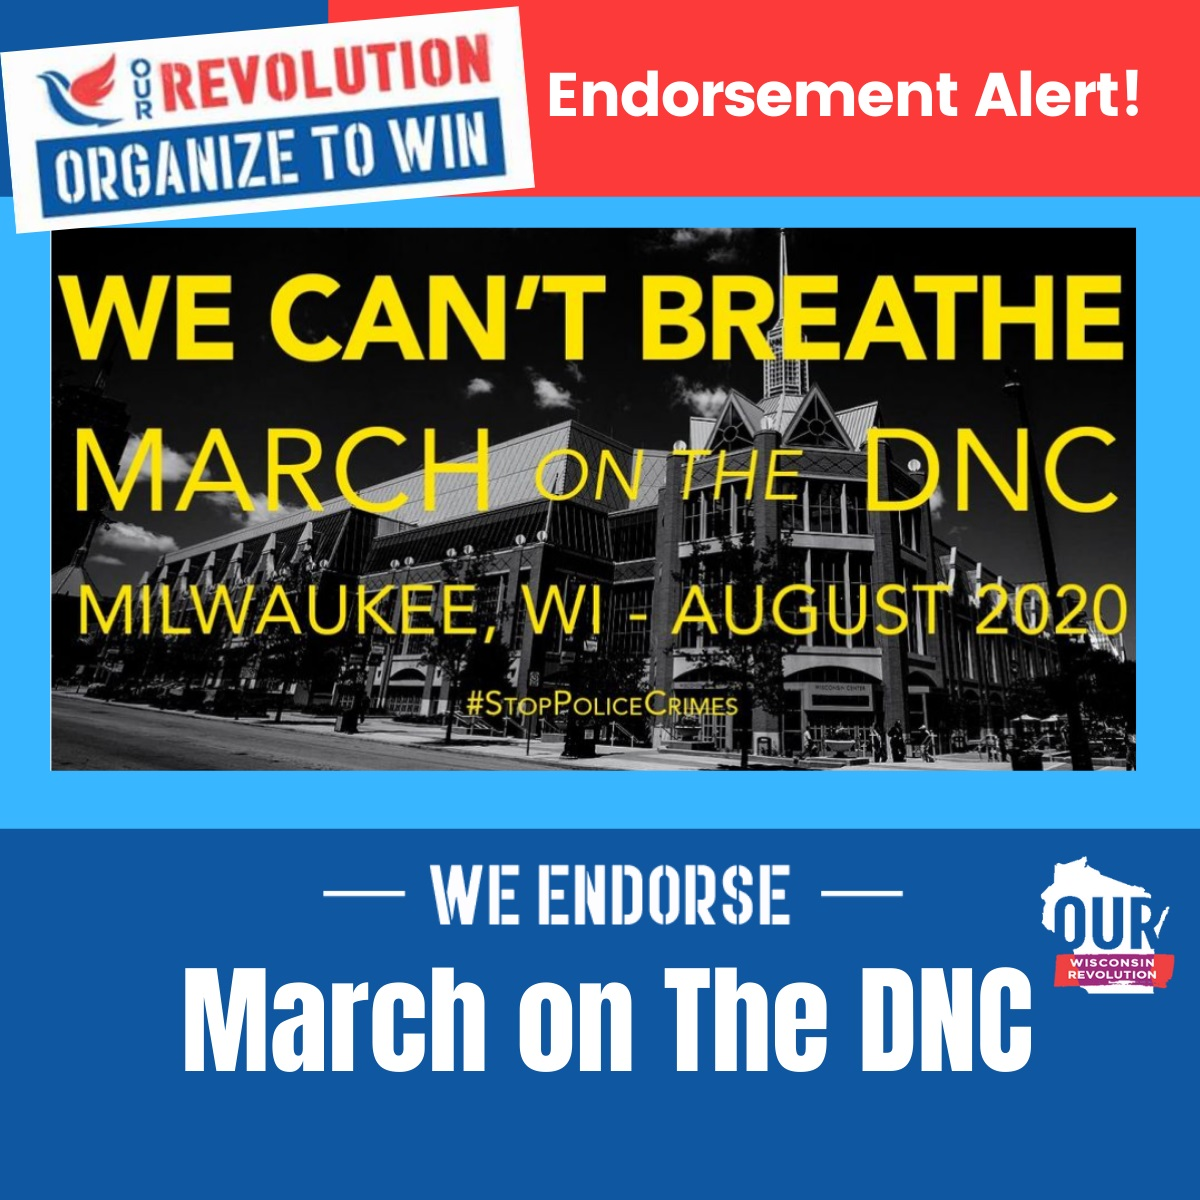 March on the DNC in Milwaukee